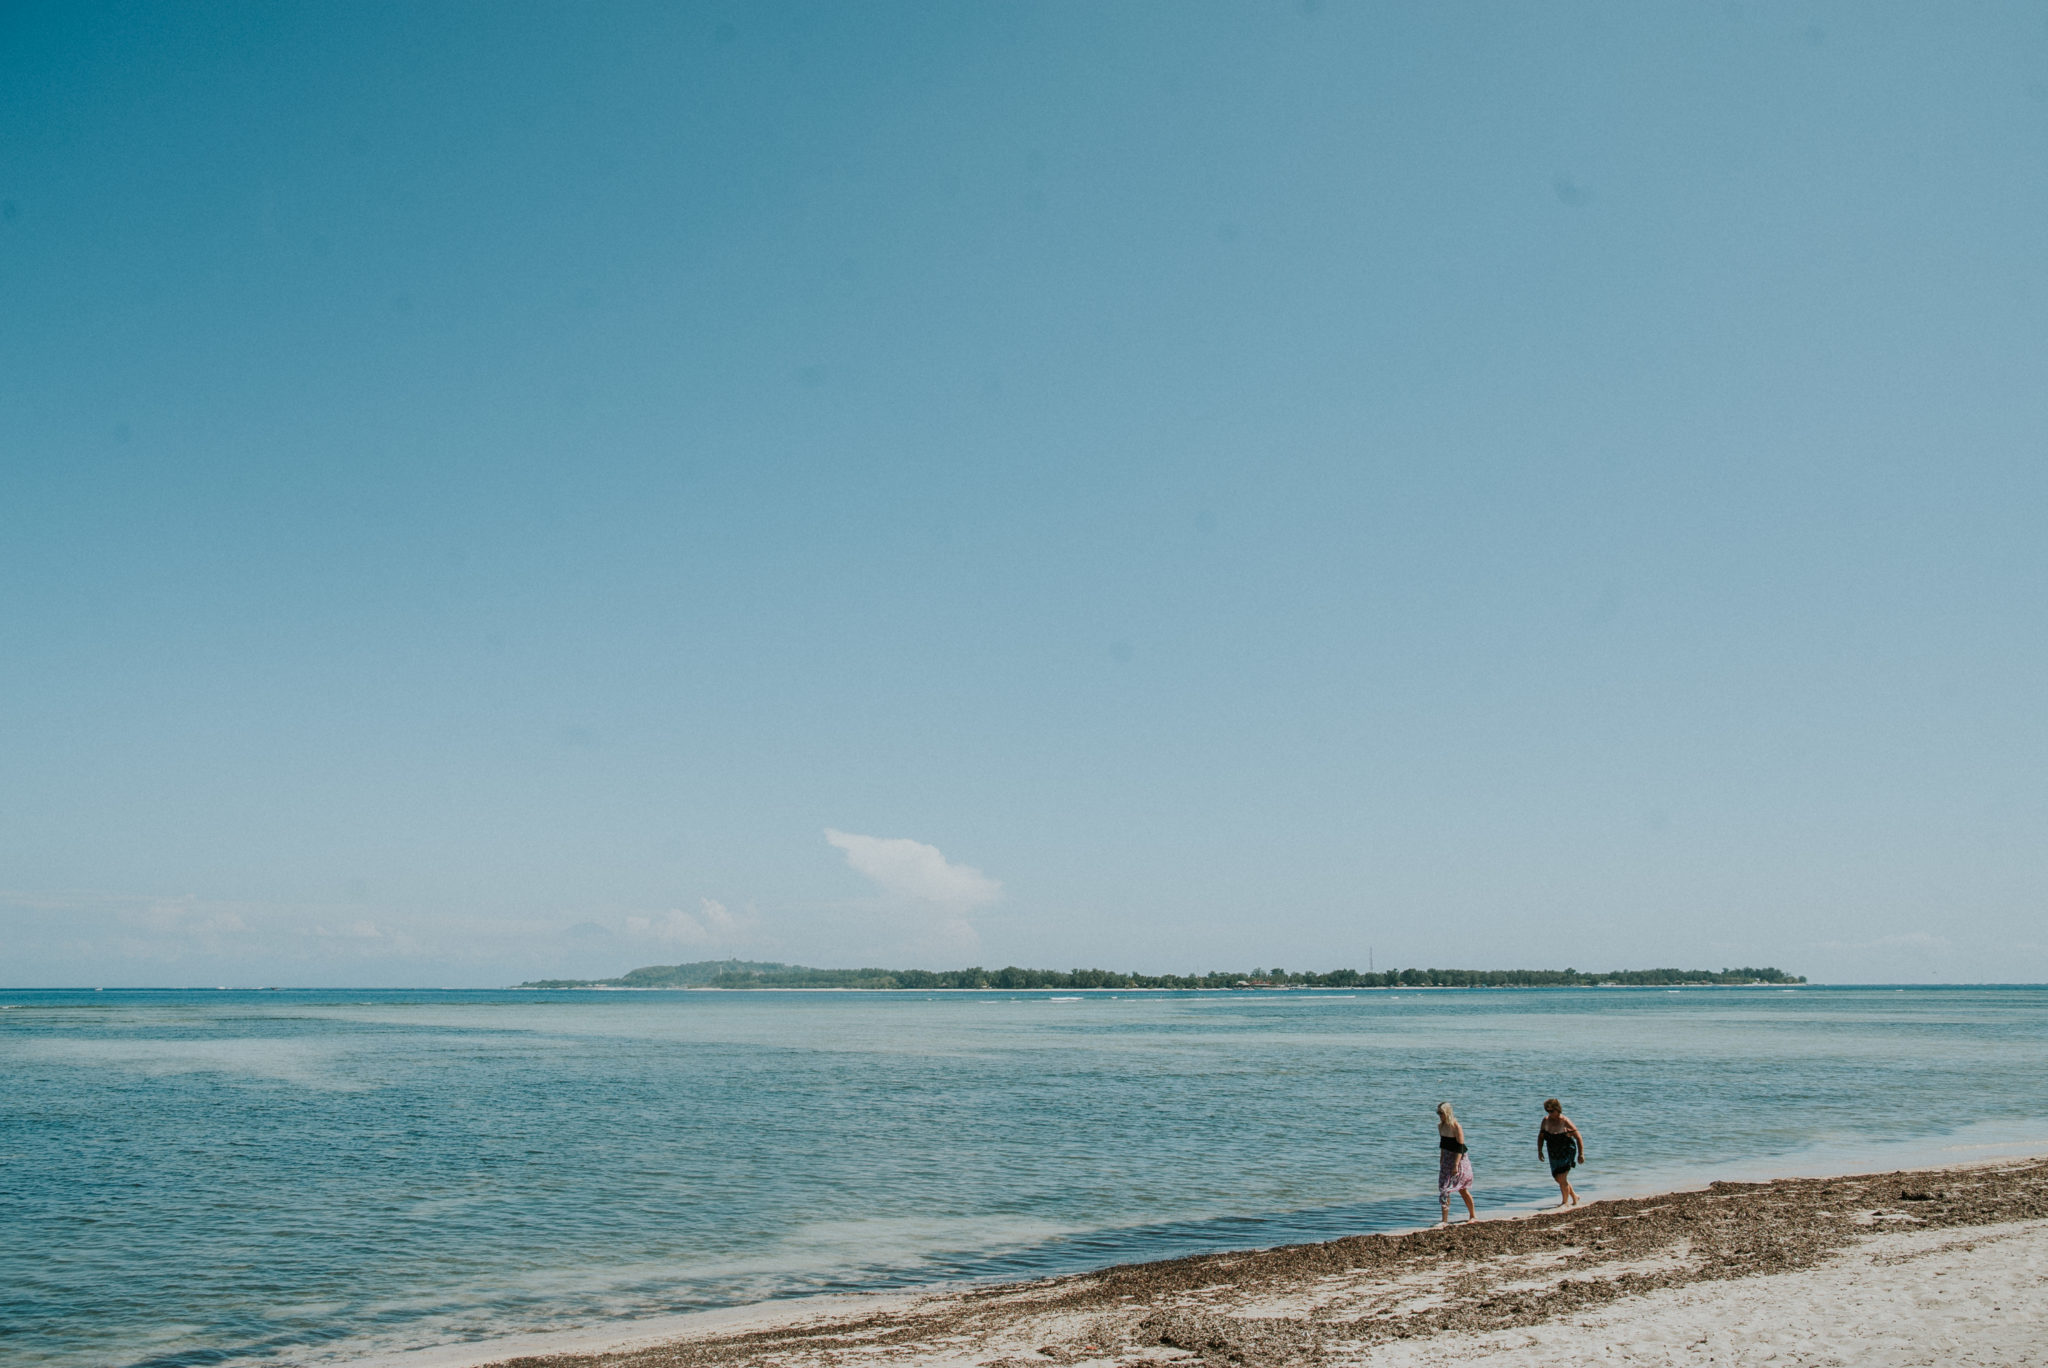 Let's Talk About Bali and Gili Air